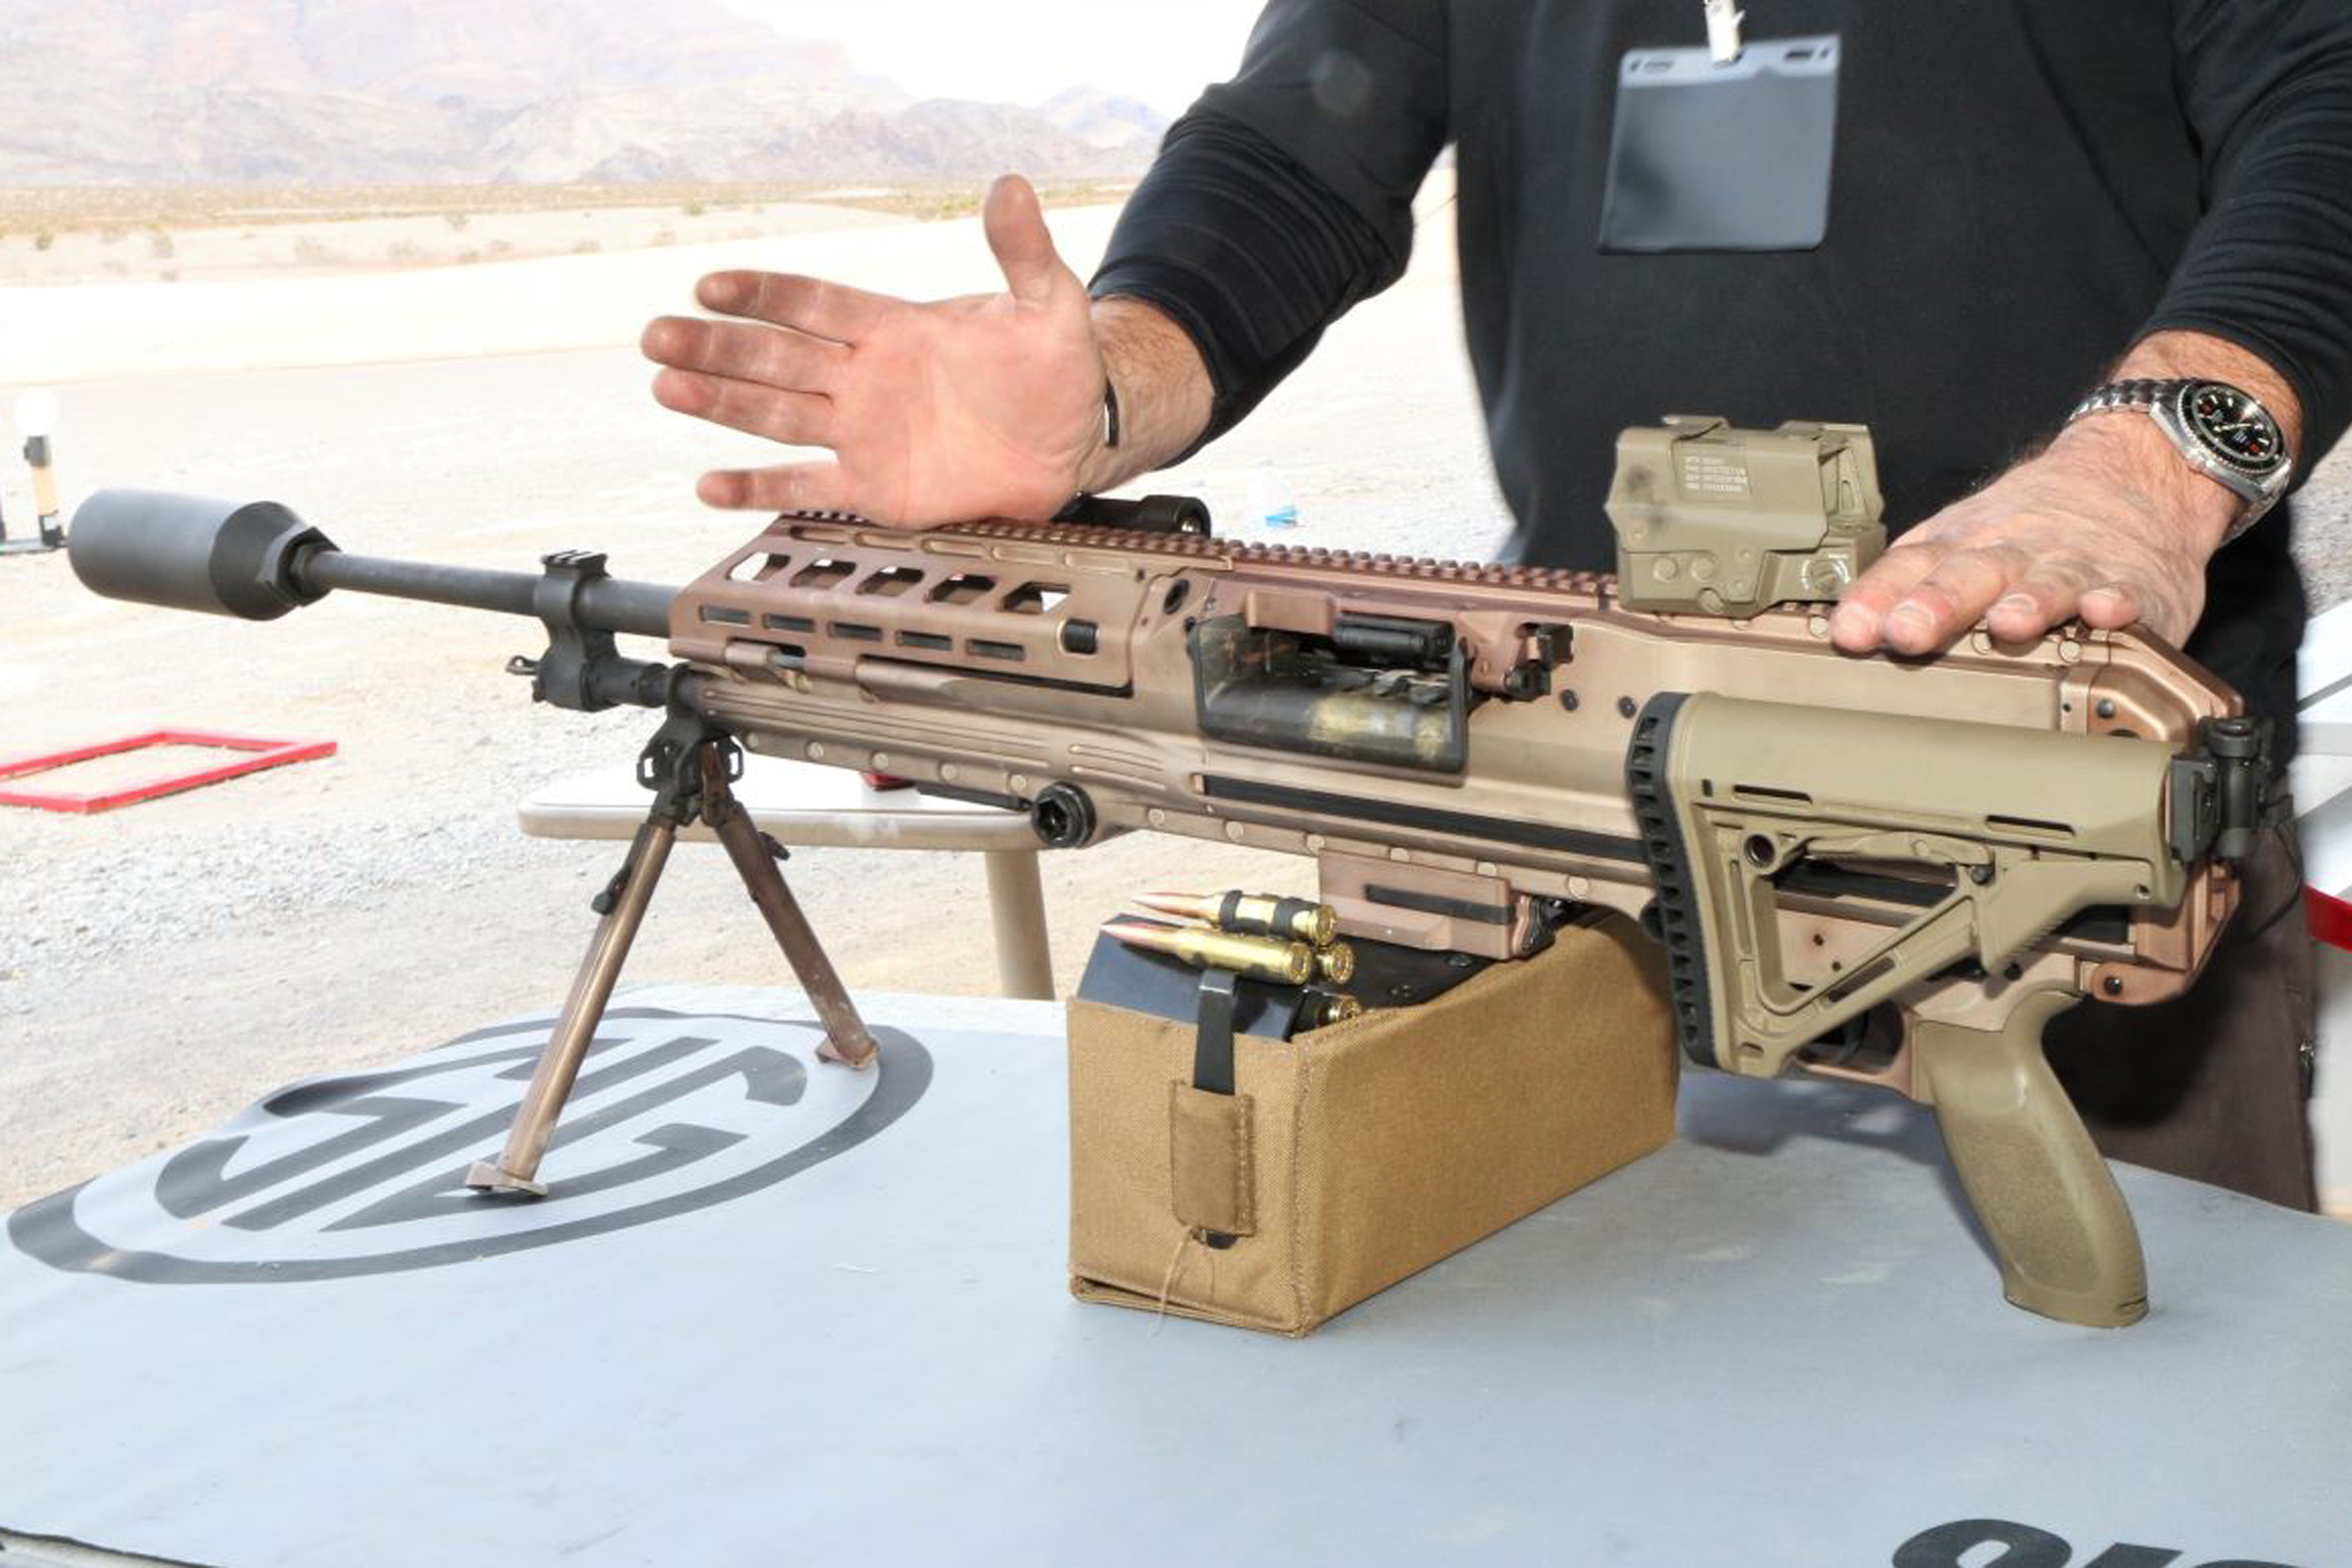 Here's the New Light Machine Gun SOCOM Is Evaluating